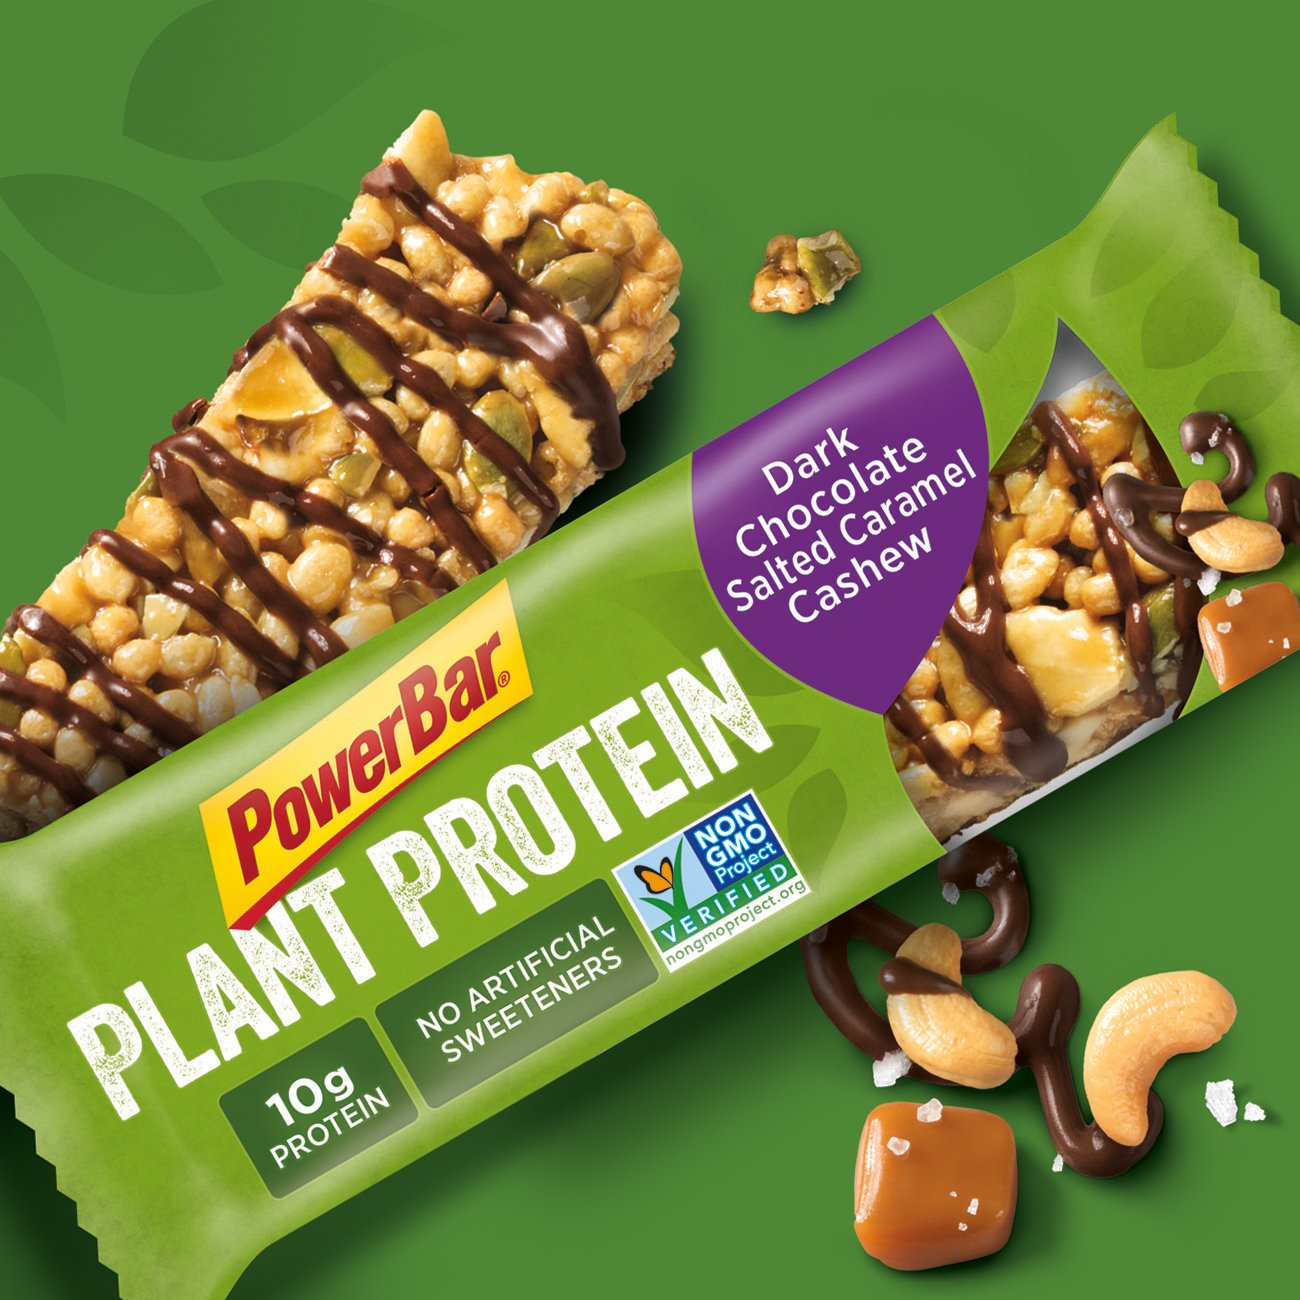 PowerBar Plant Protein Bar, Dark Chocolate Salted Caramel Cashew, 15 Count, Pack of 1 by Powerbar (Image #2)